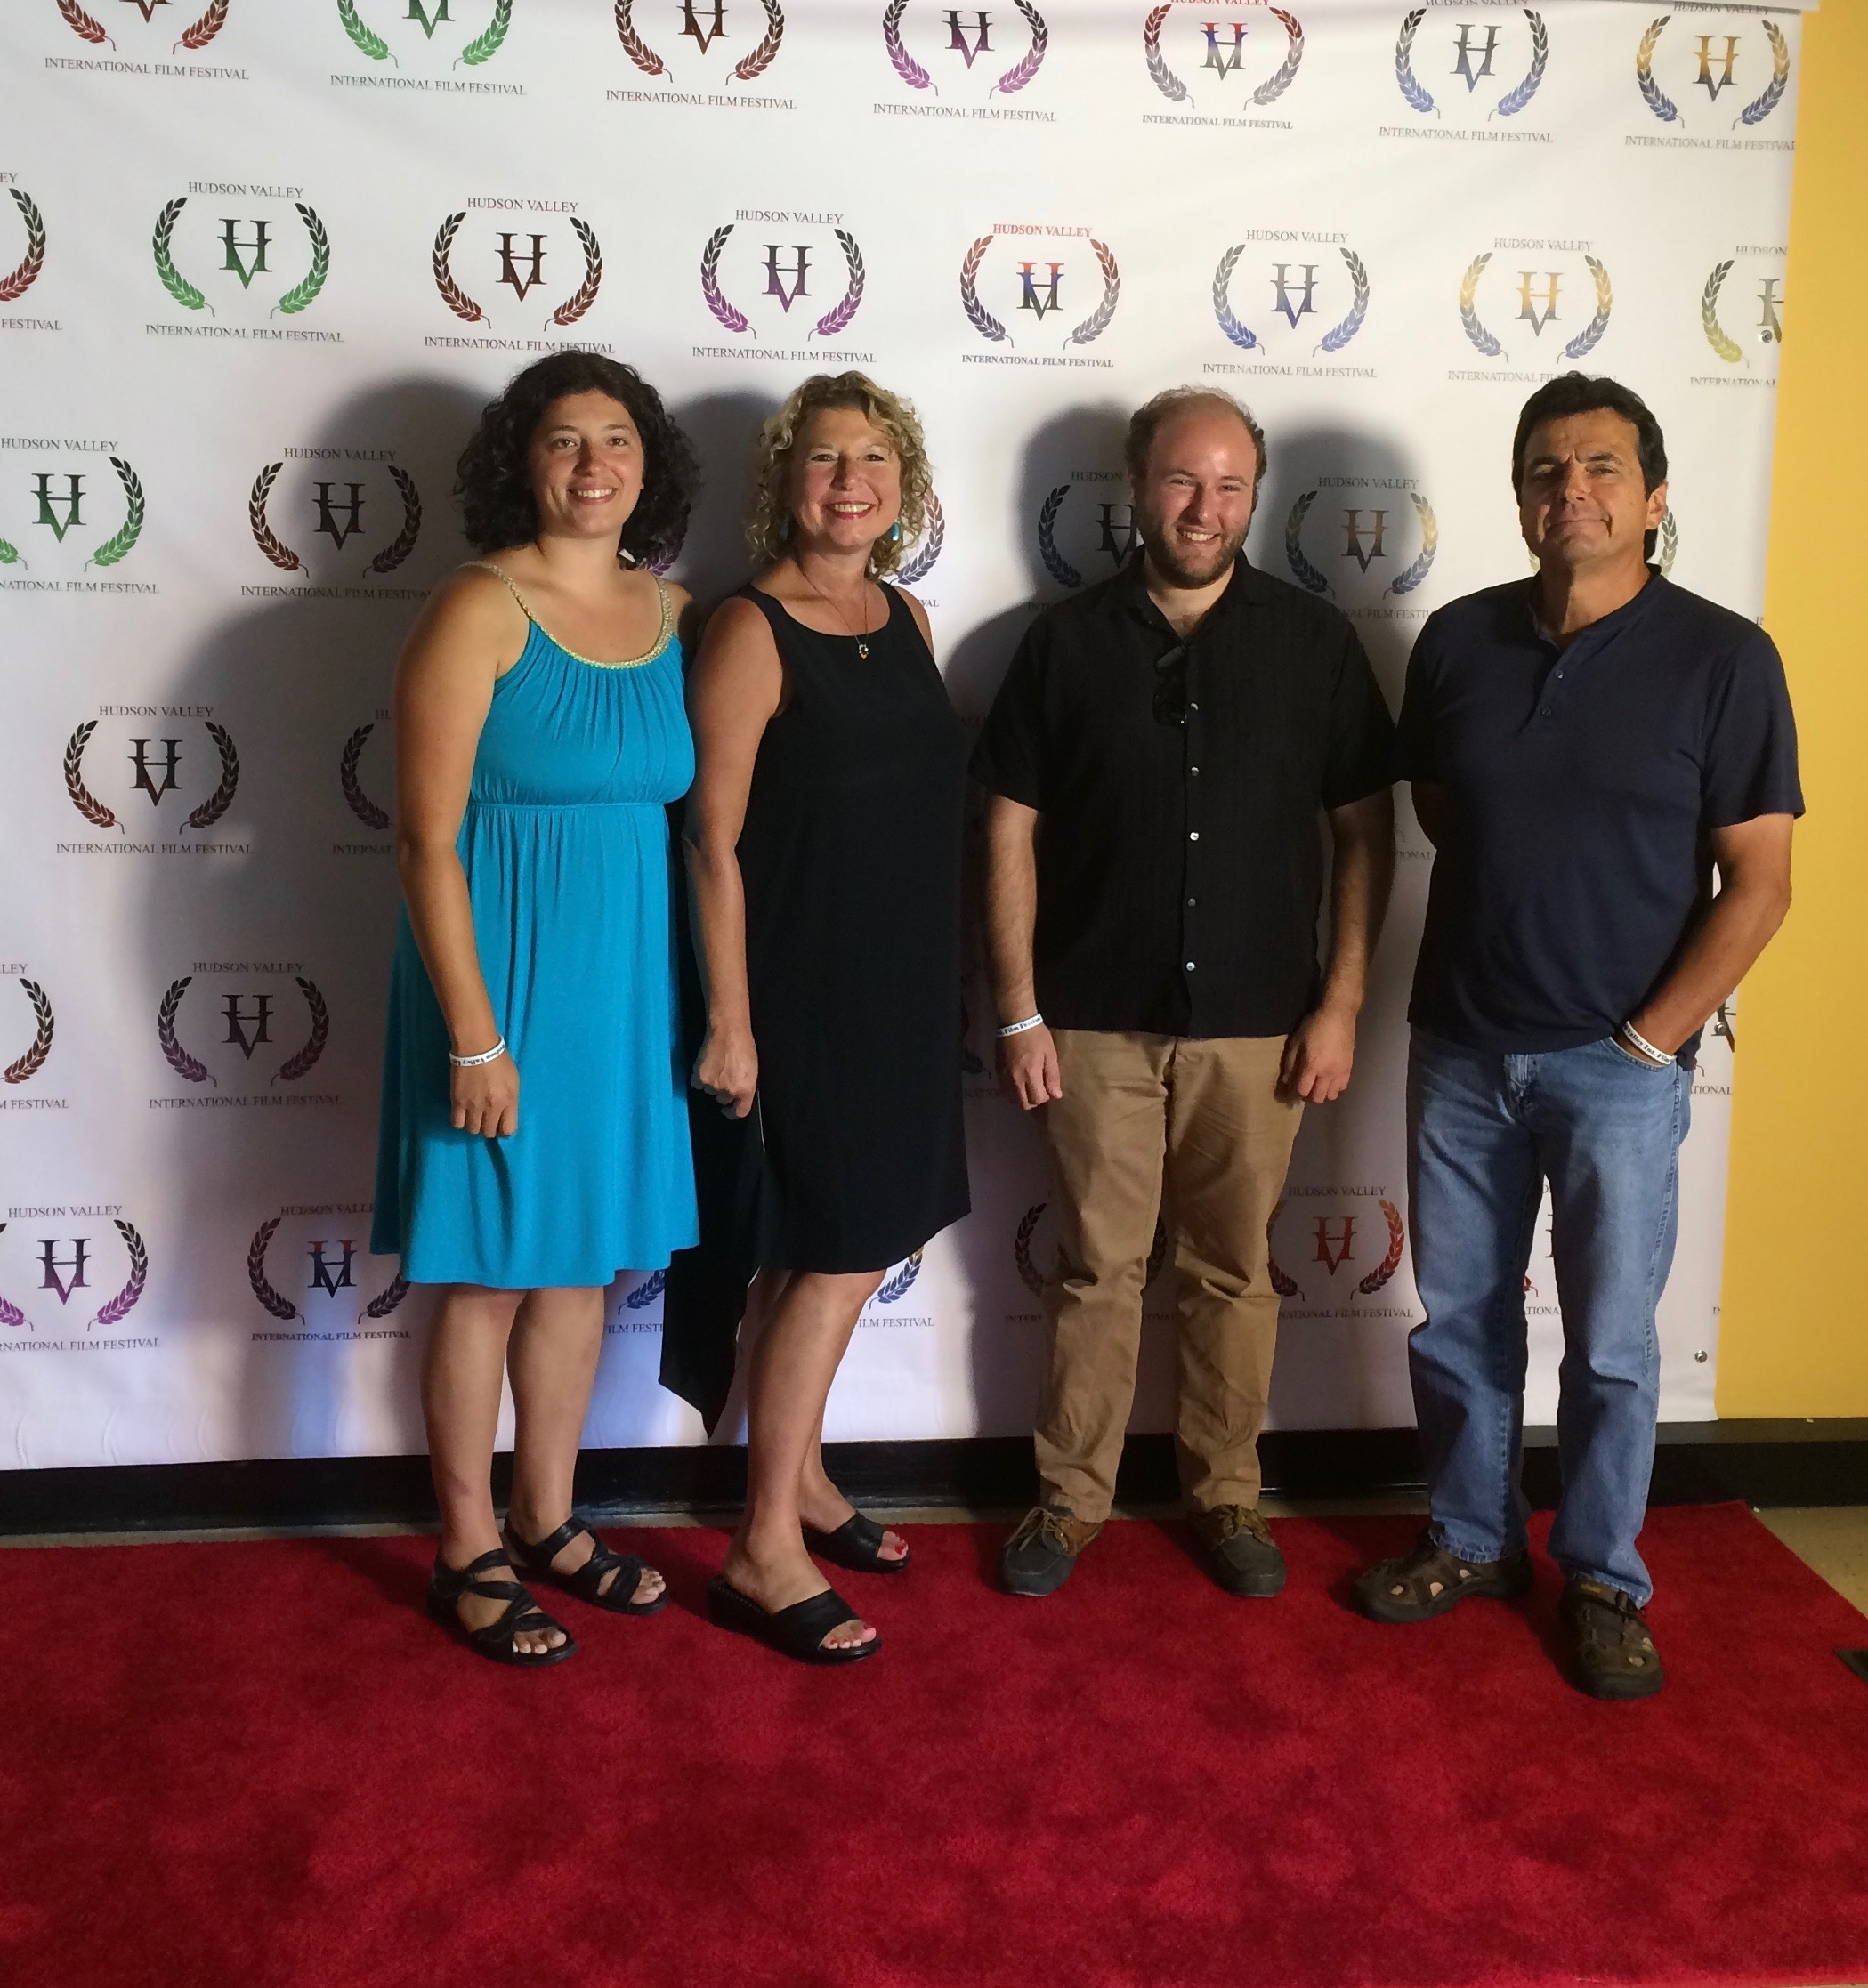 Hudson Valley International Film Festival with Michael DeMaio, composer and Amelia Muccia and Willy Smith, musicians